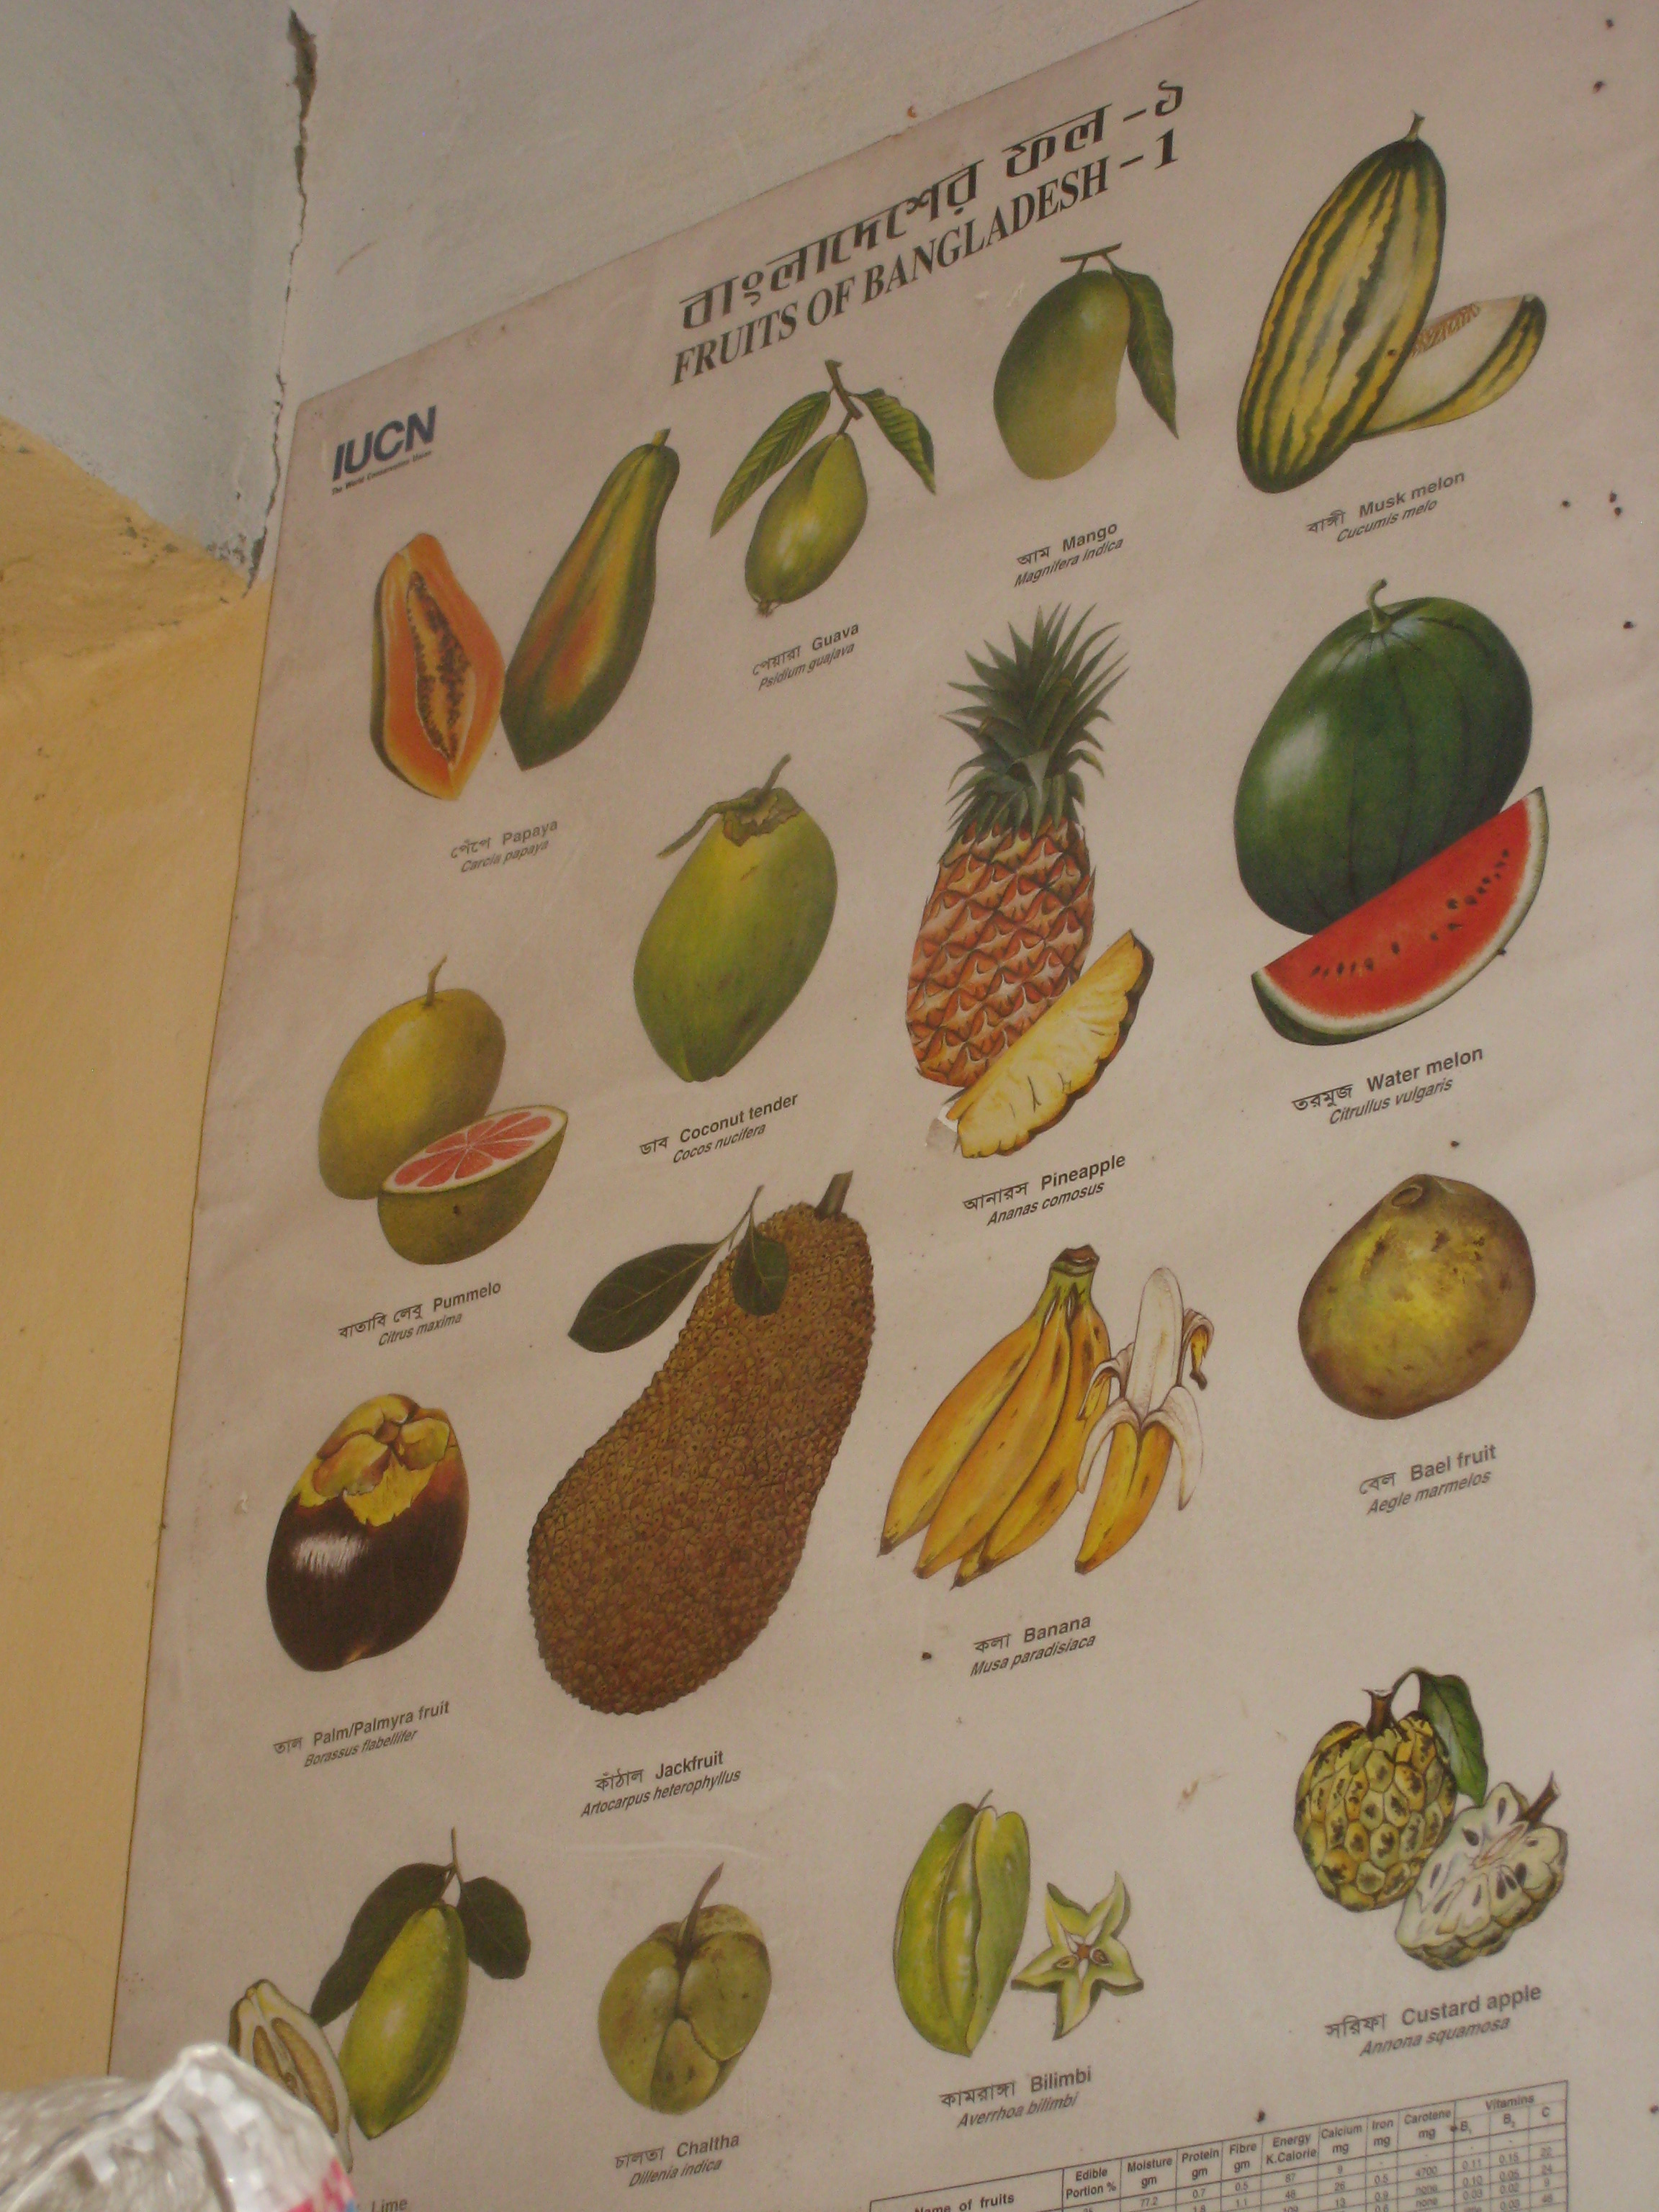 A sign of various fruits